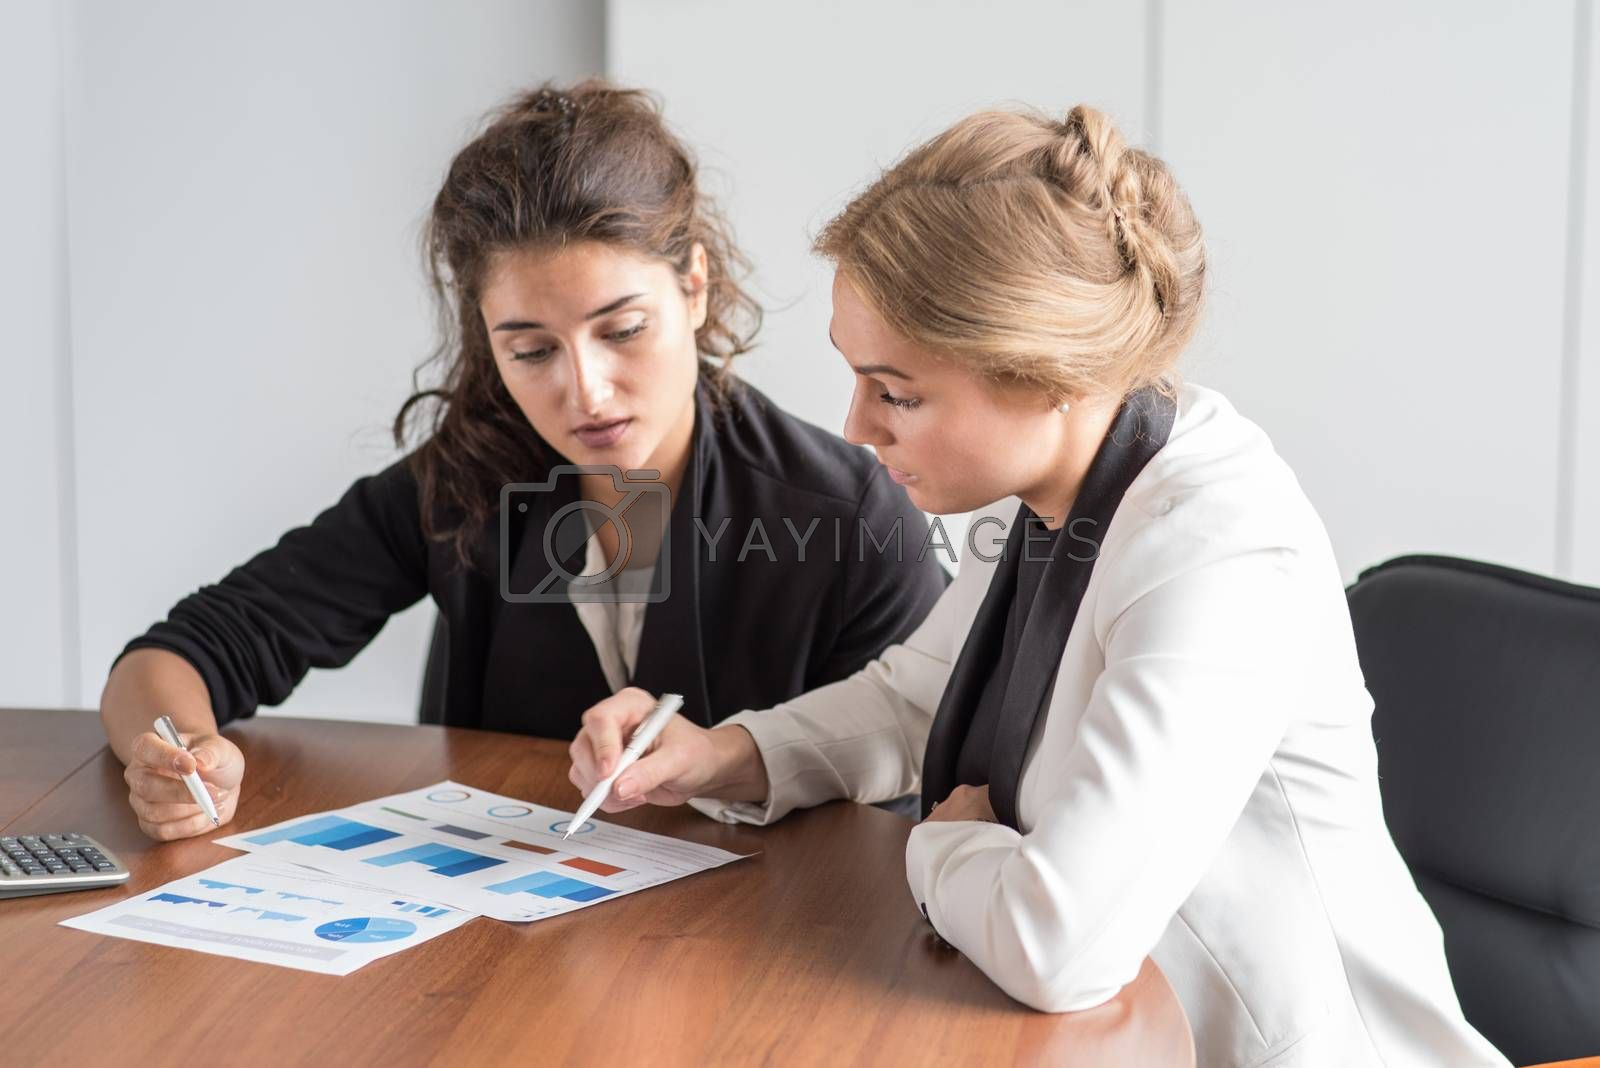 Business women working with financial diagrams, discussing financial reports at workplace